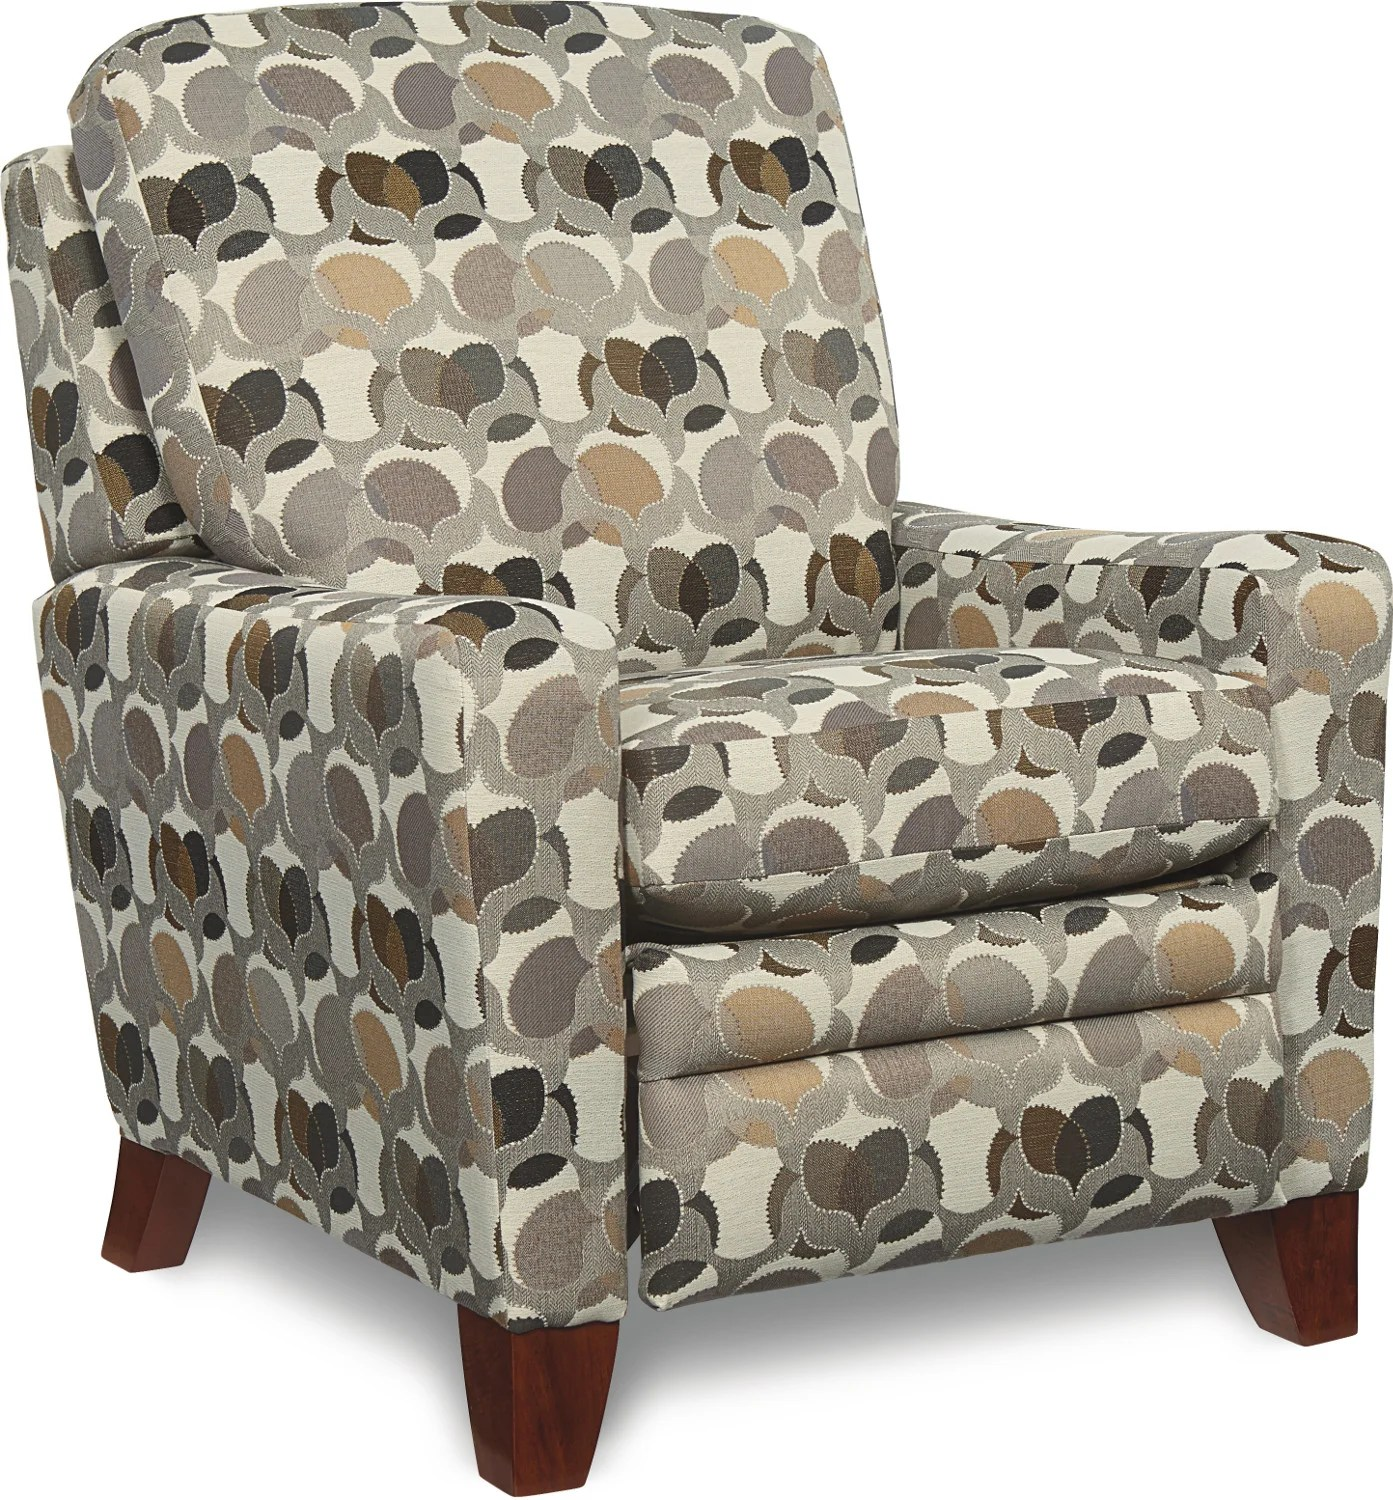 low profile chairs bad back for home cabot recliner